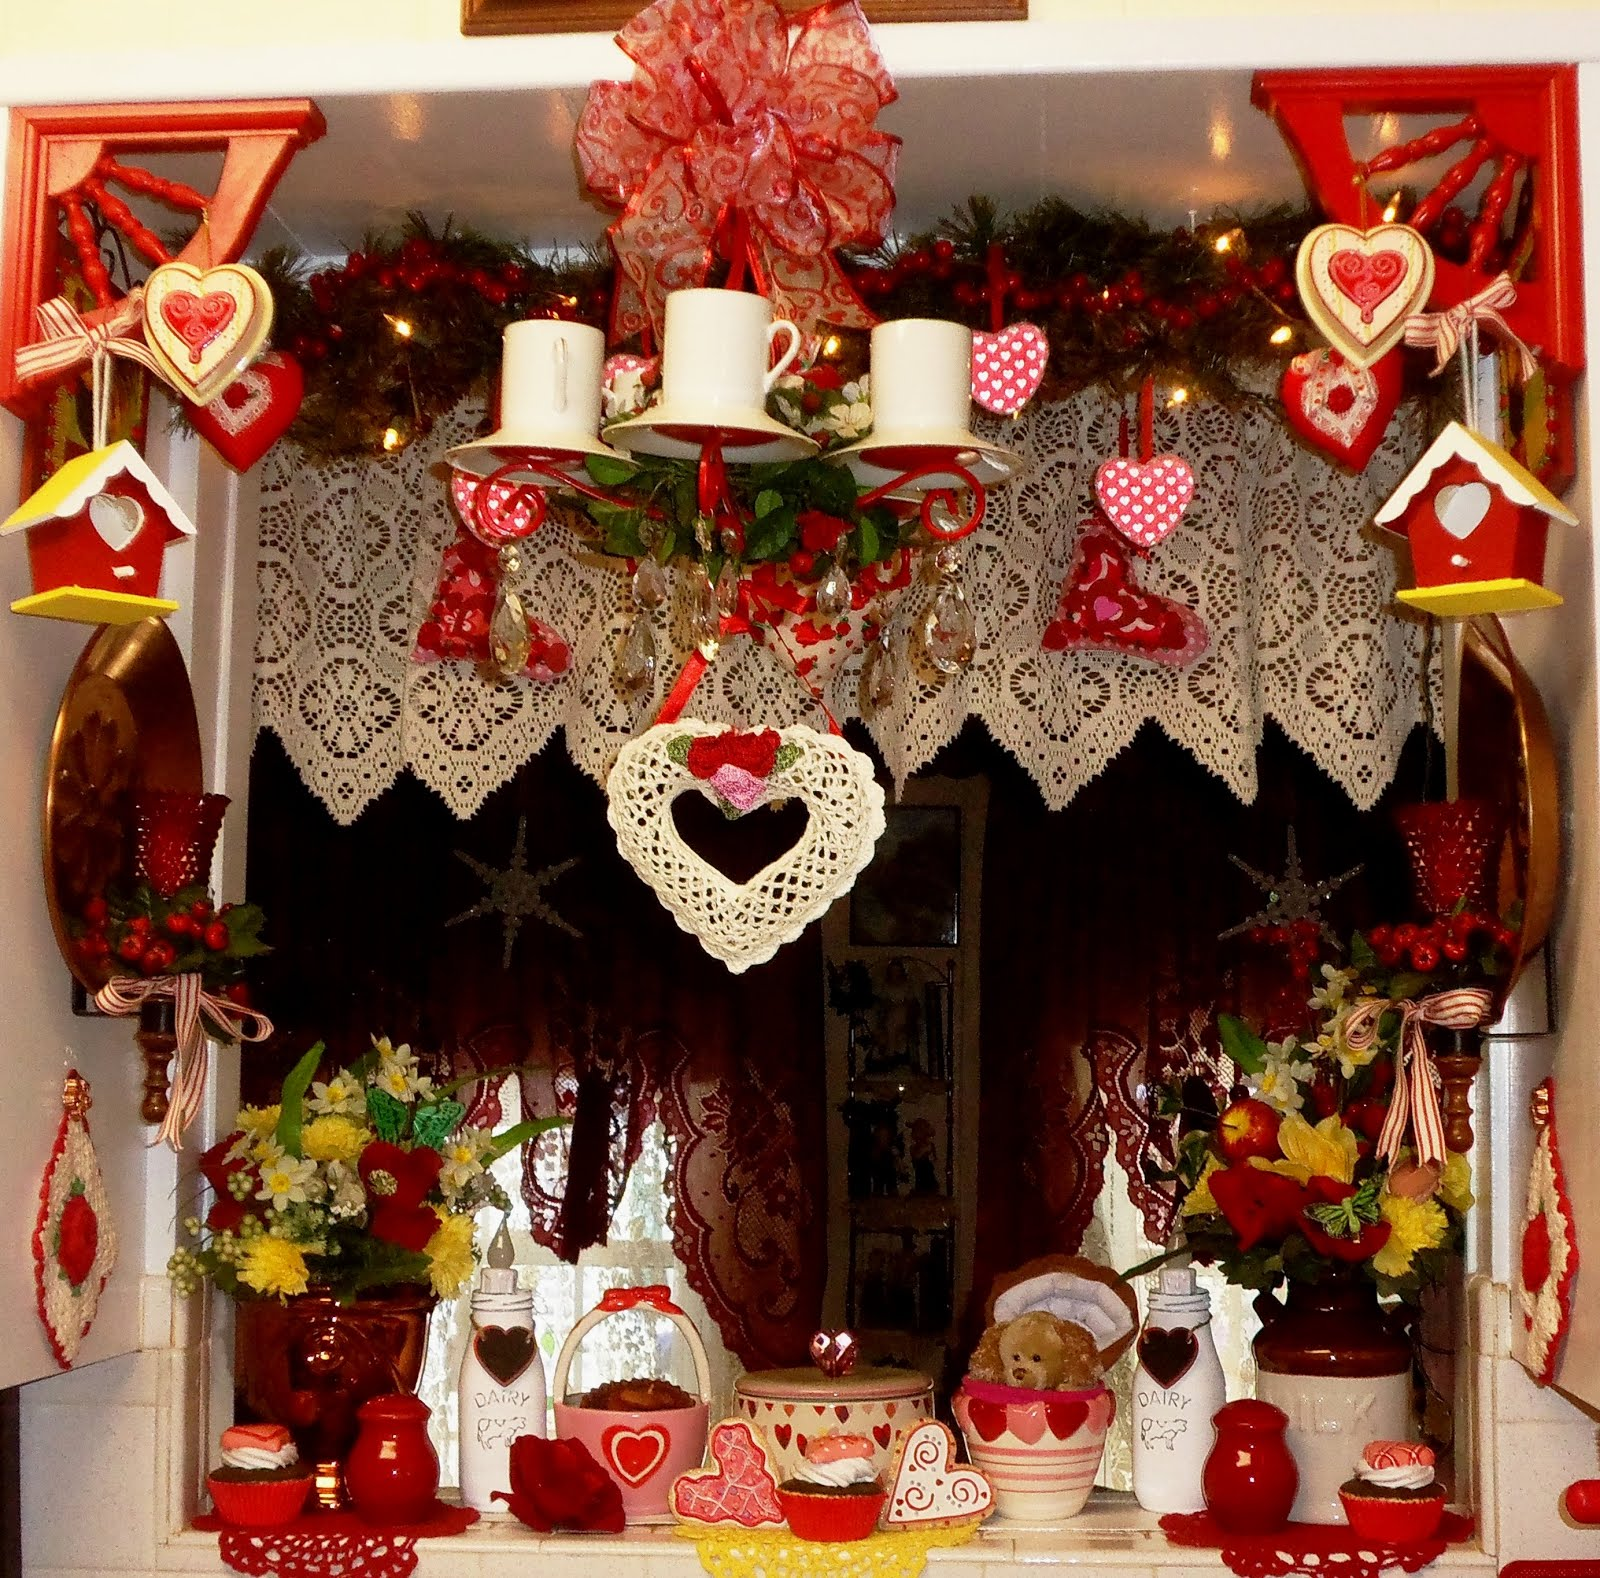 Valentine Decor in the Kitchen, 2016